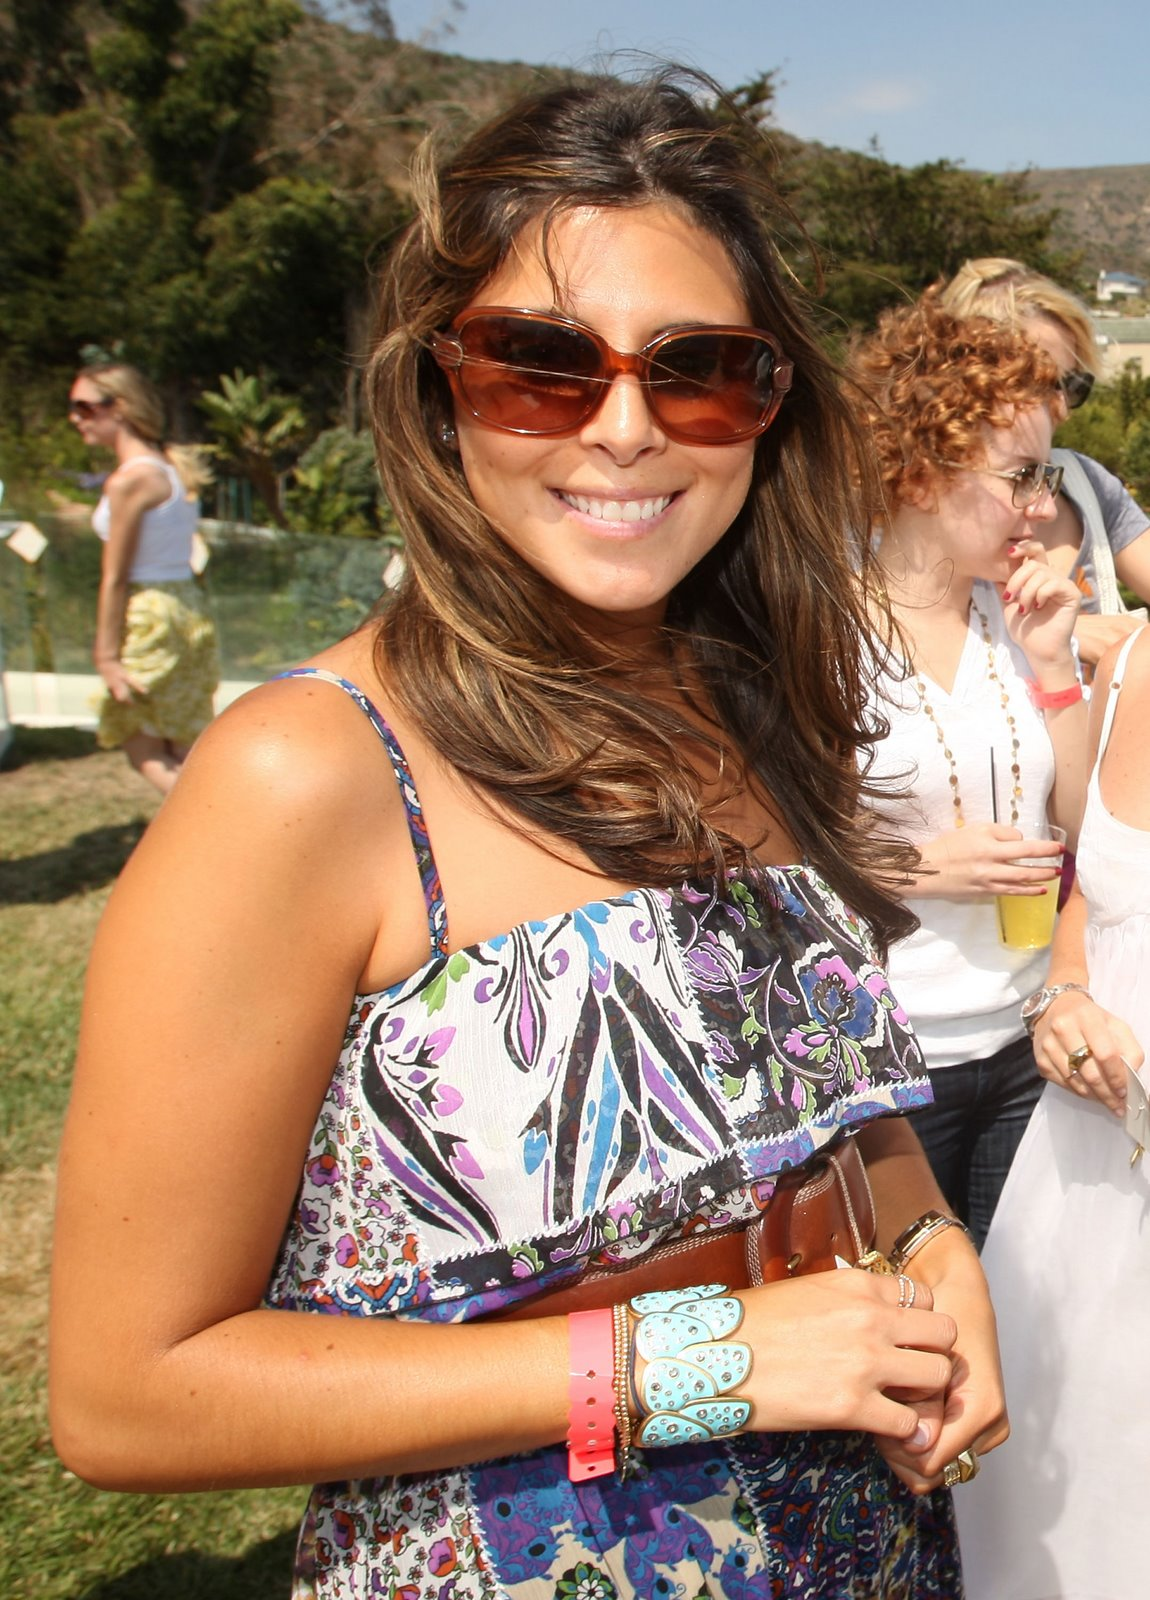 Jamie Lynn Sigler hot picture